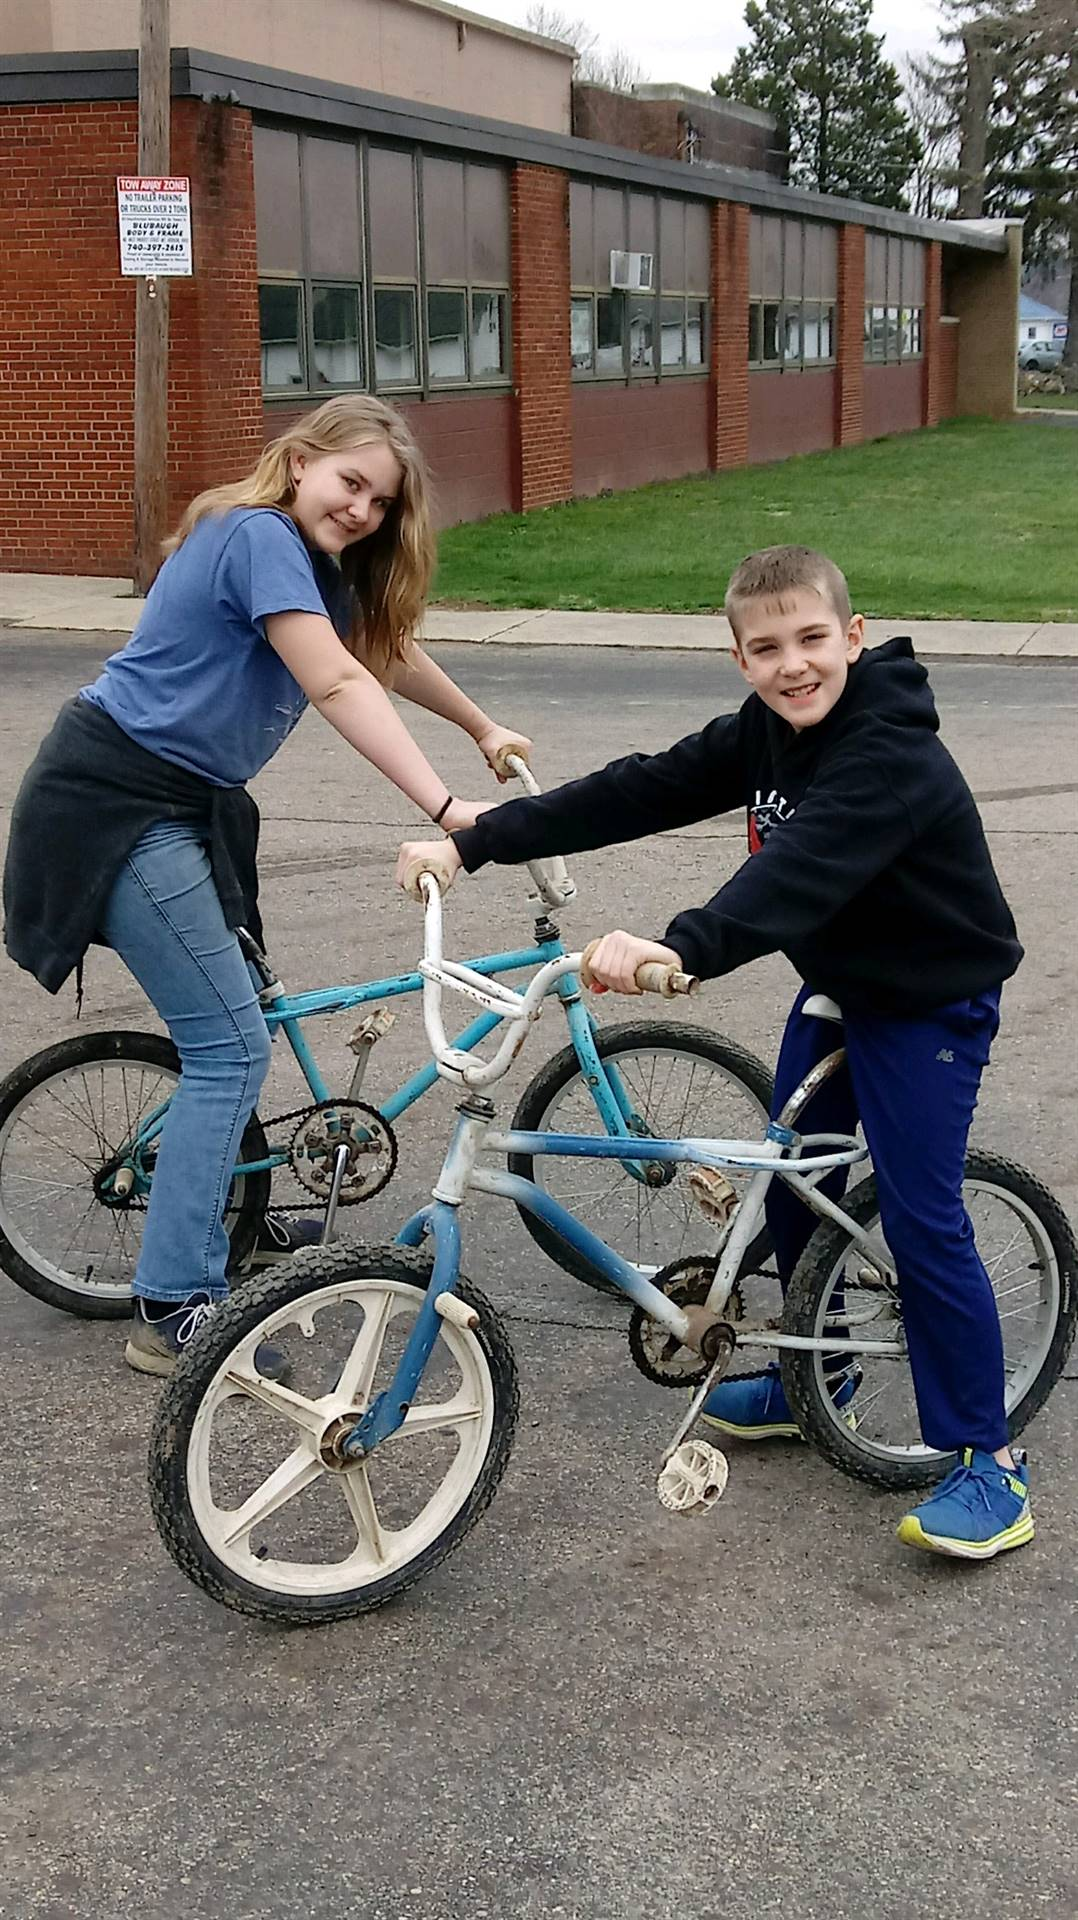 Boy and a girl on bicycles